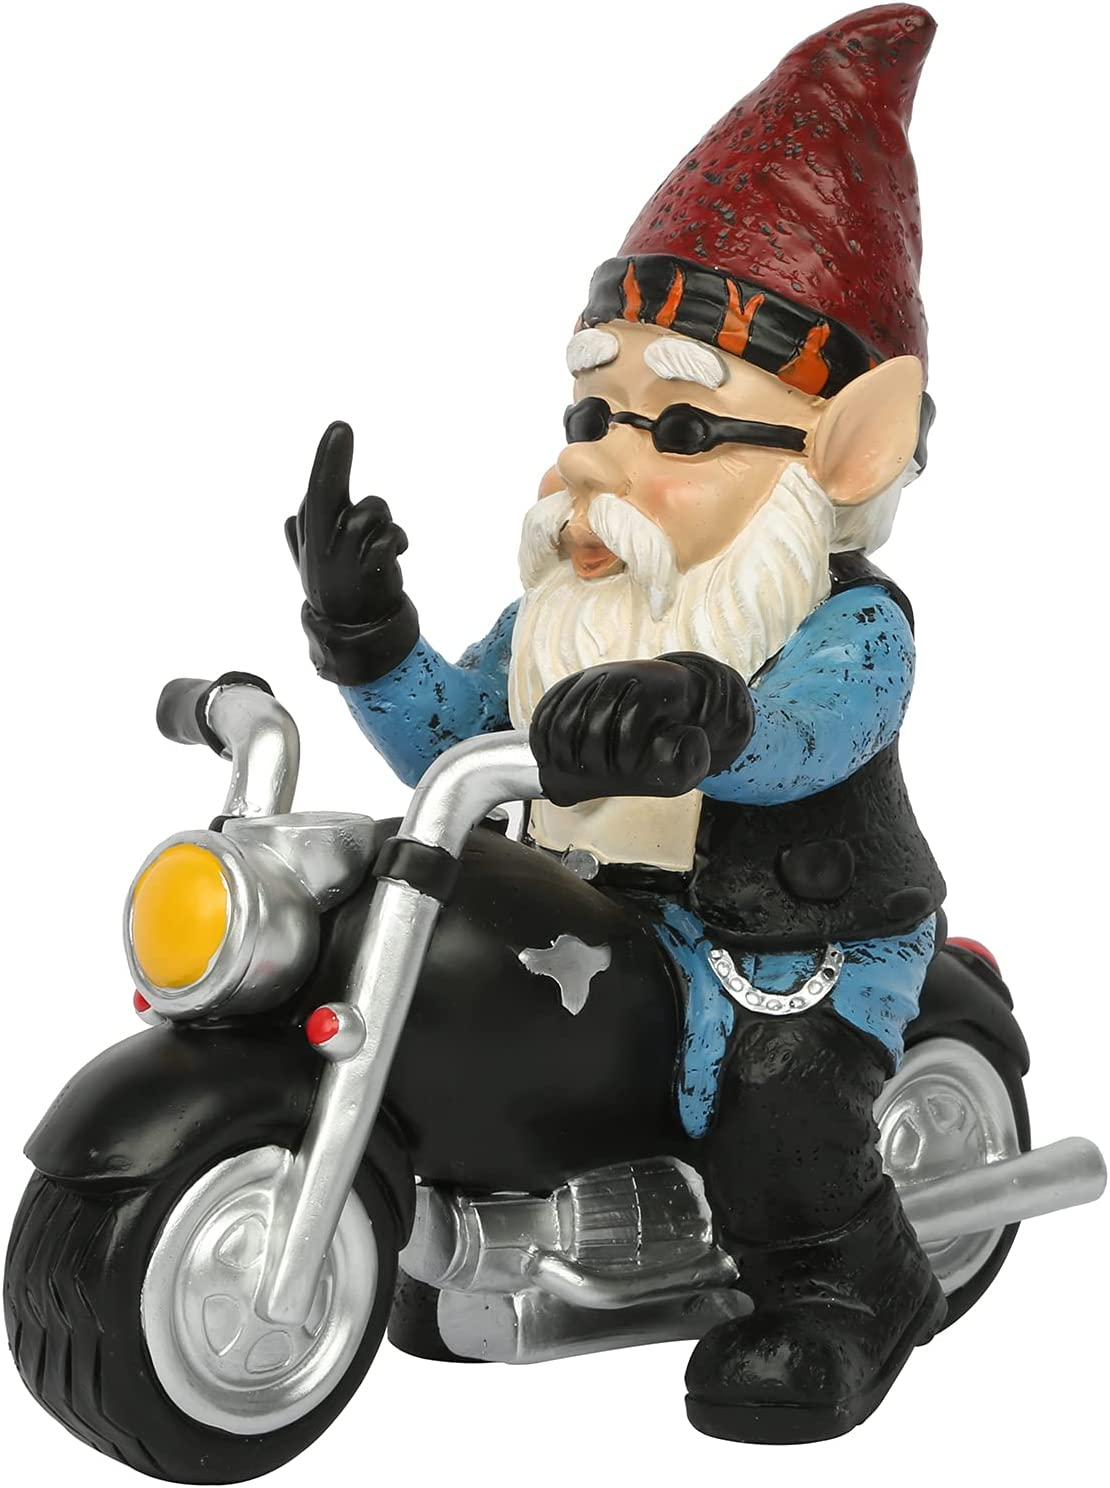 Soldering Exqelf Gnome with Motorcycle Statue Figurine Garden Resin Limited time sale Gnomes